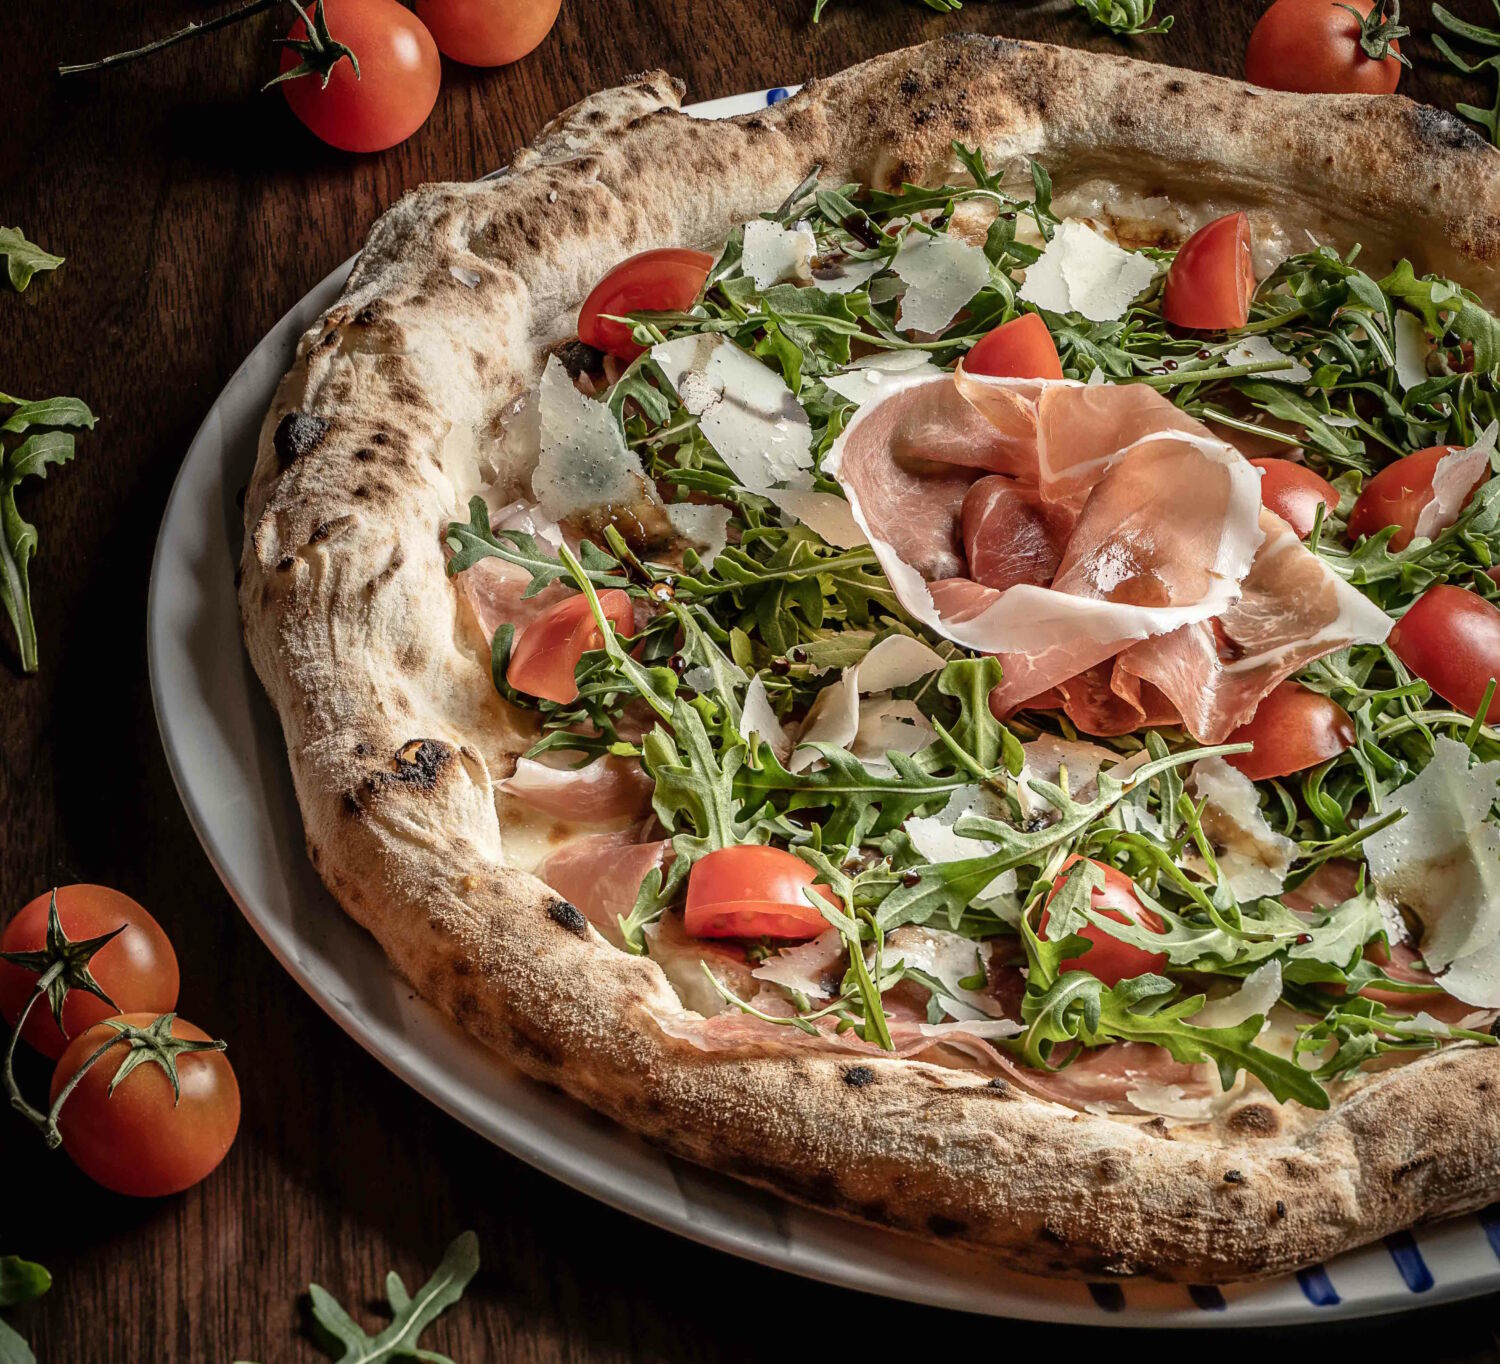 CasaDonAlfonso Pizza with mozzarella Parma ham wild arugula cherry tomatoes parmesan flakes and aged Modena balsamic vinegar